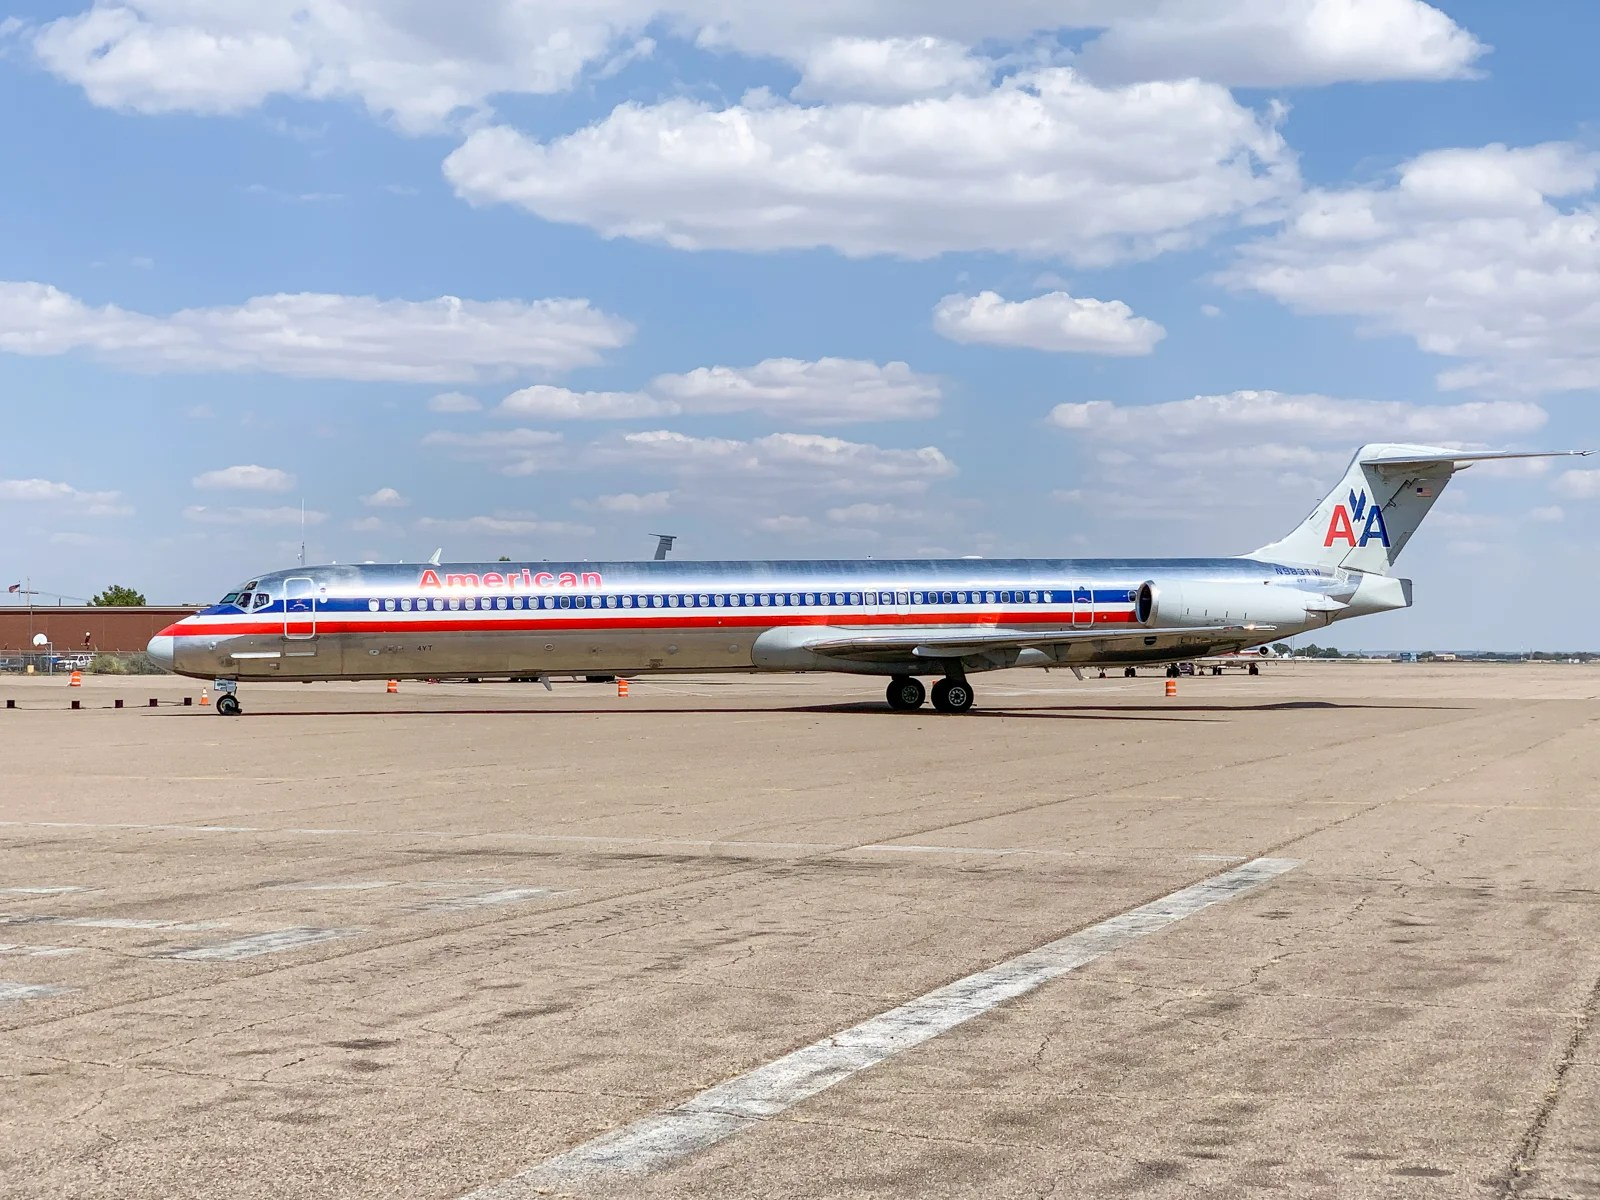 To the 'boneyard': Sending the American Airlines MD-80 into retirement